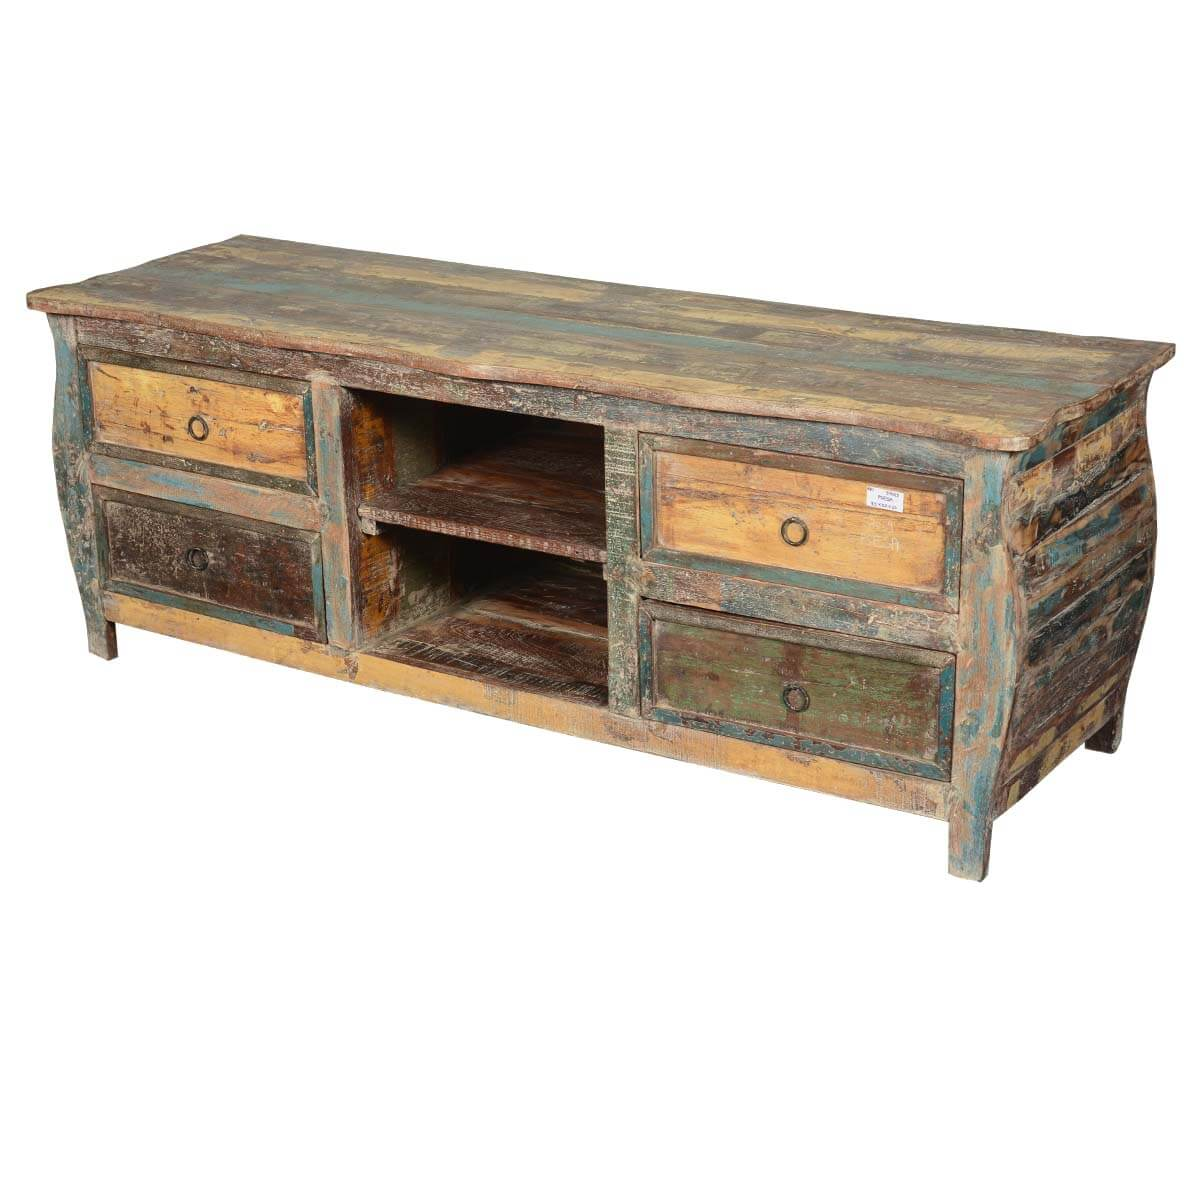 Late Colonial Reclaimed Wood Rustic Kettle Base TV Media Cabinet